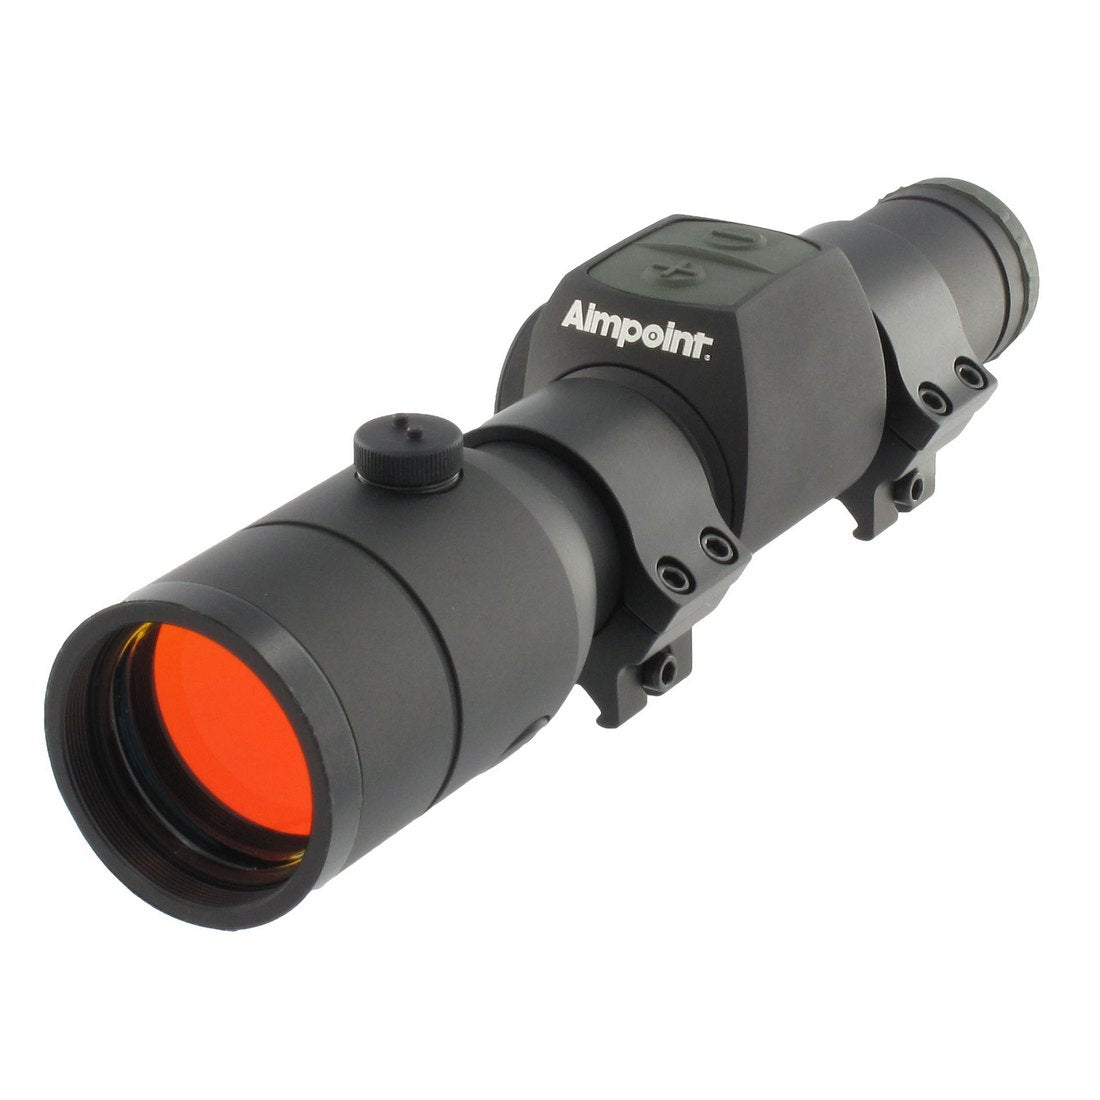 Aimpoint 12690 H30S Sight - Security Pro USA